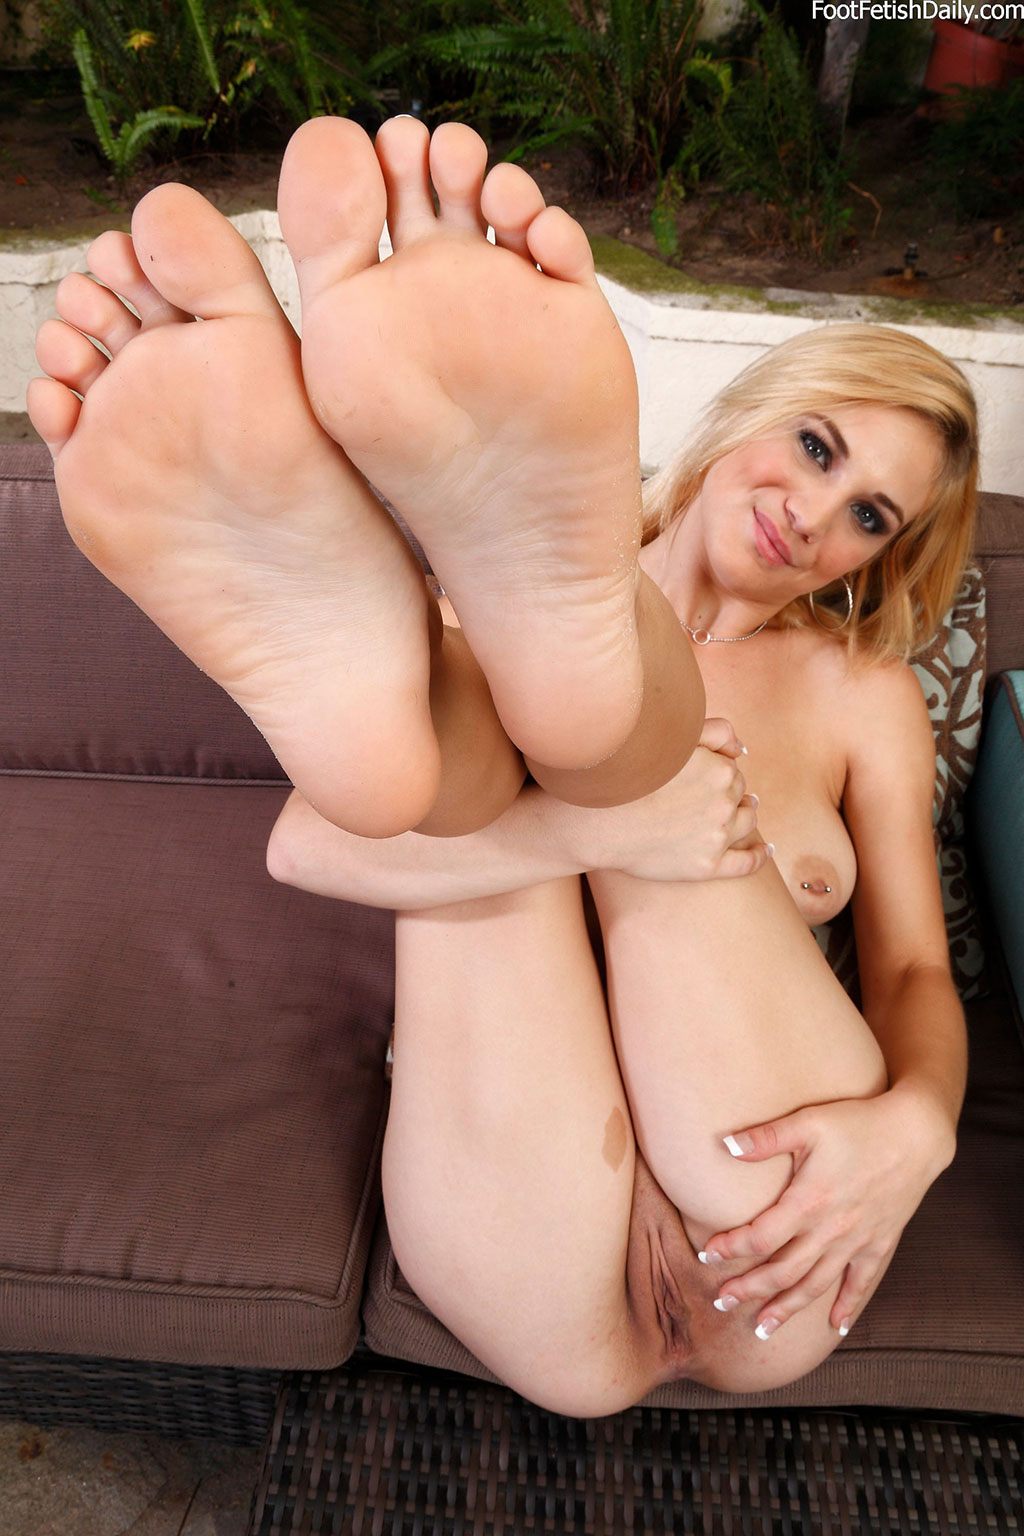 Girl with foot fetish